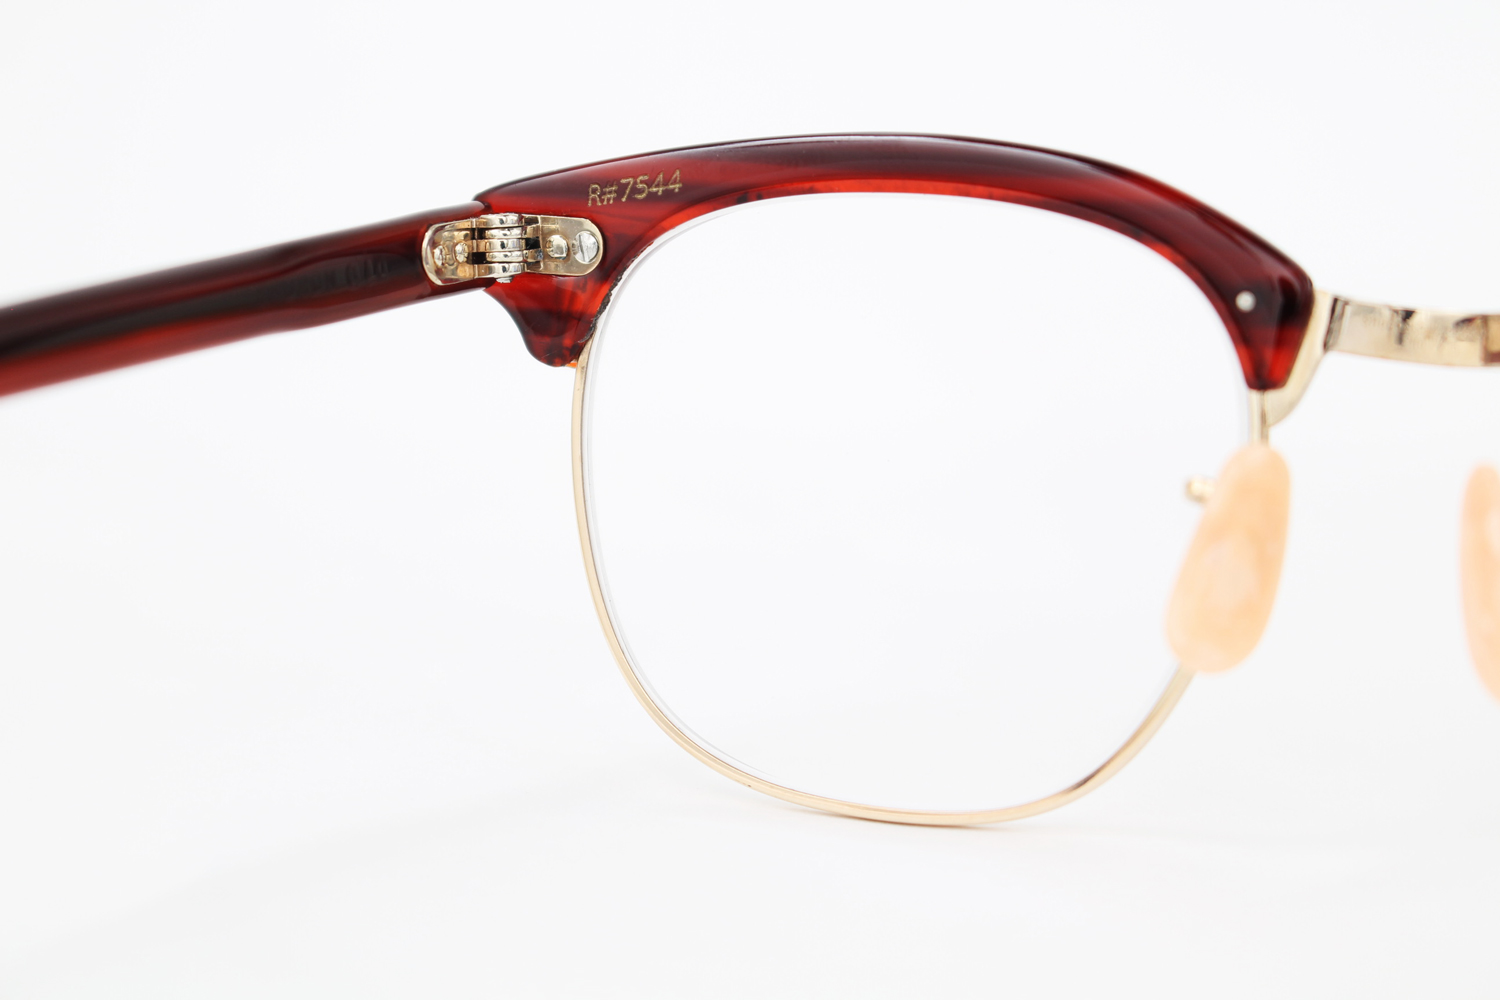 TS_Shuron_Optical_Company_Combination_1_10-12K_Gold_Filled_with_Cellulose_Acetate_red_5